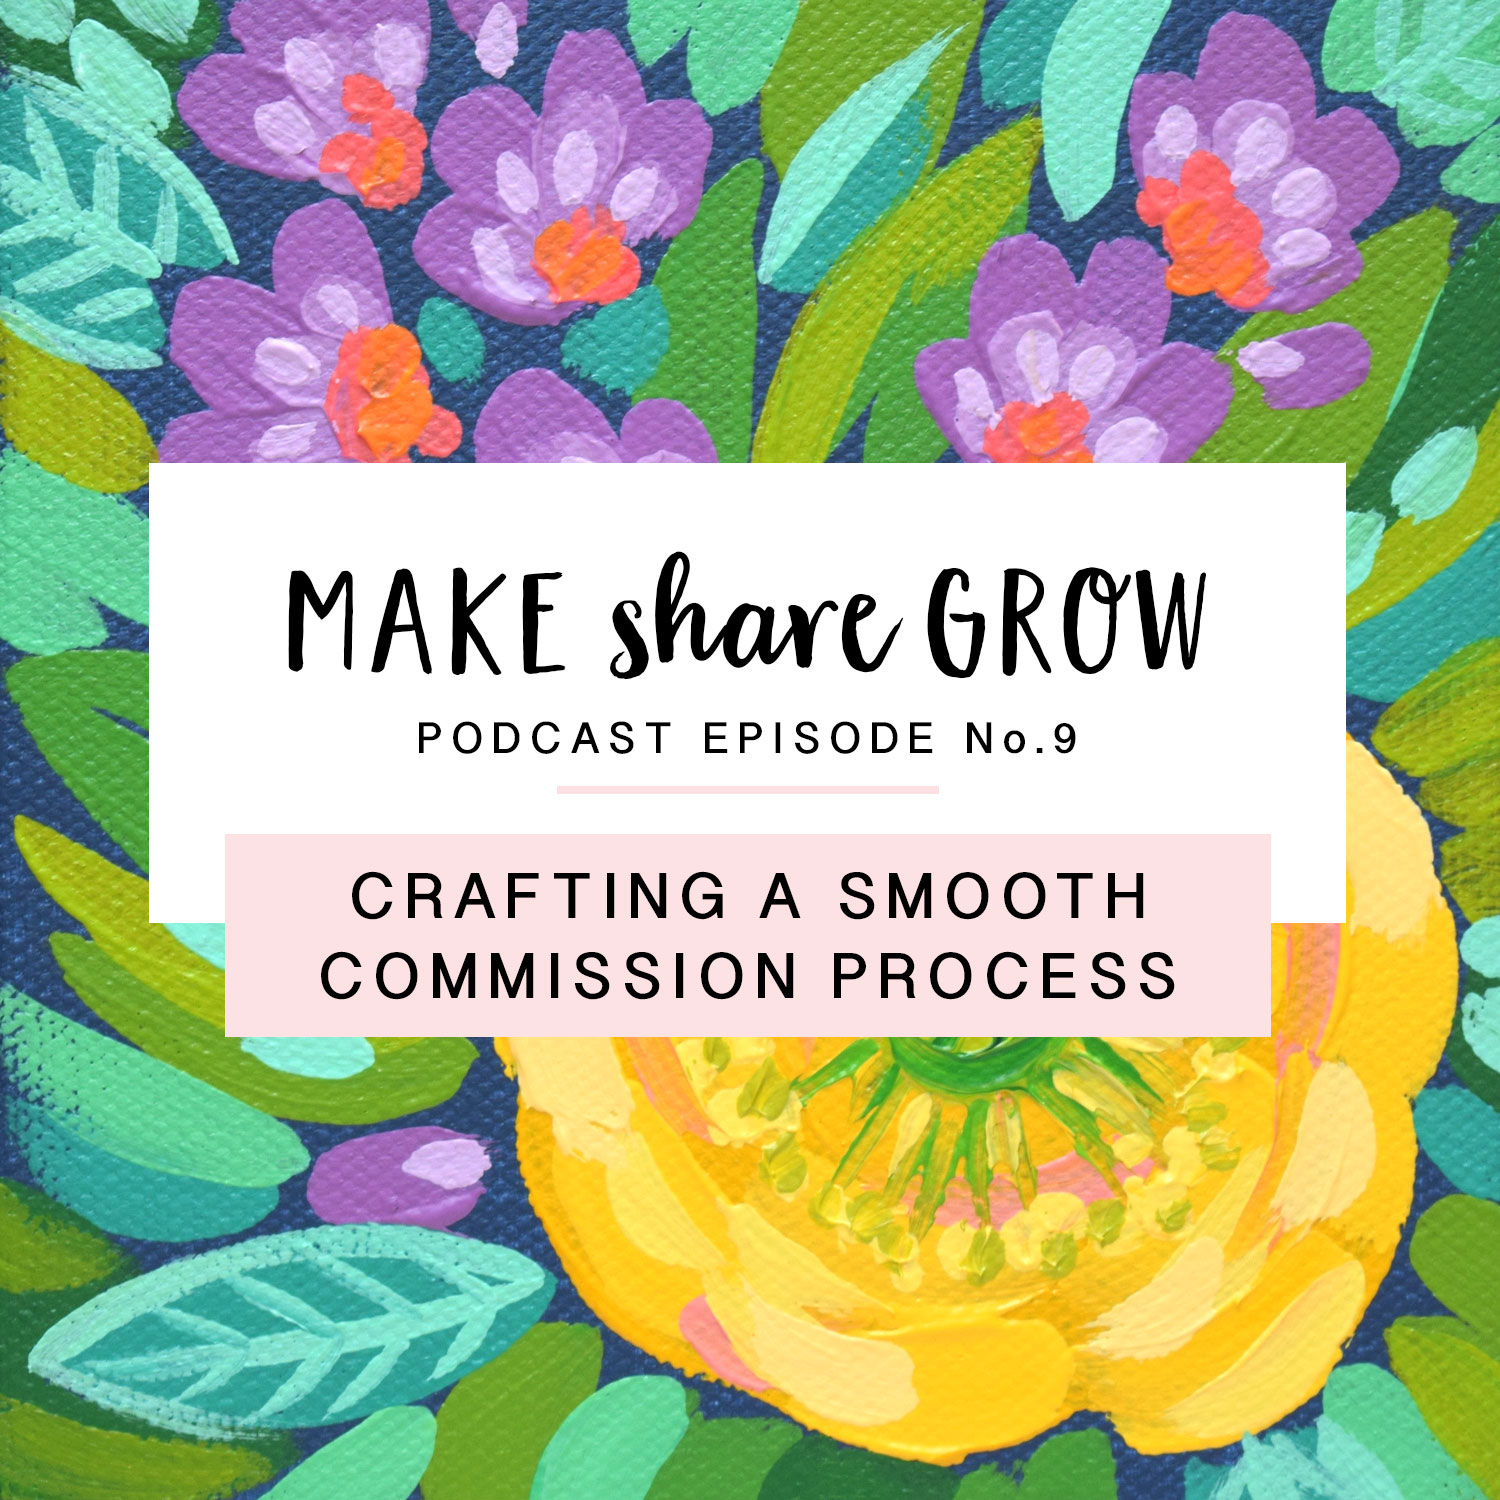 Make-Share-Grow-Podcast-Episode-9-art.jpg